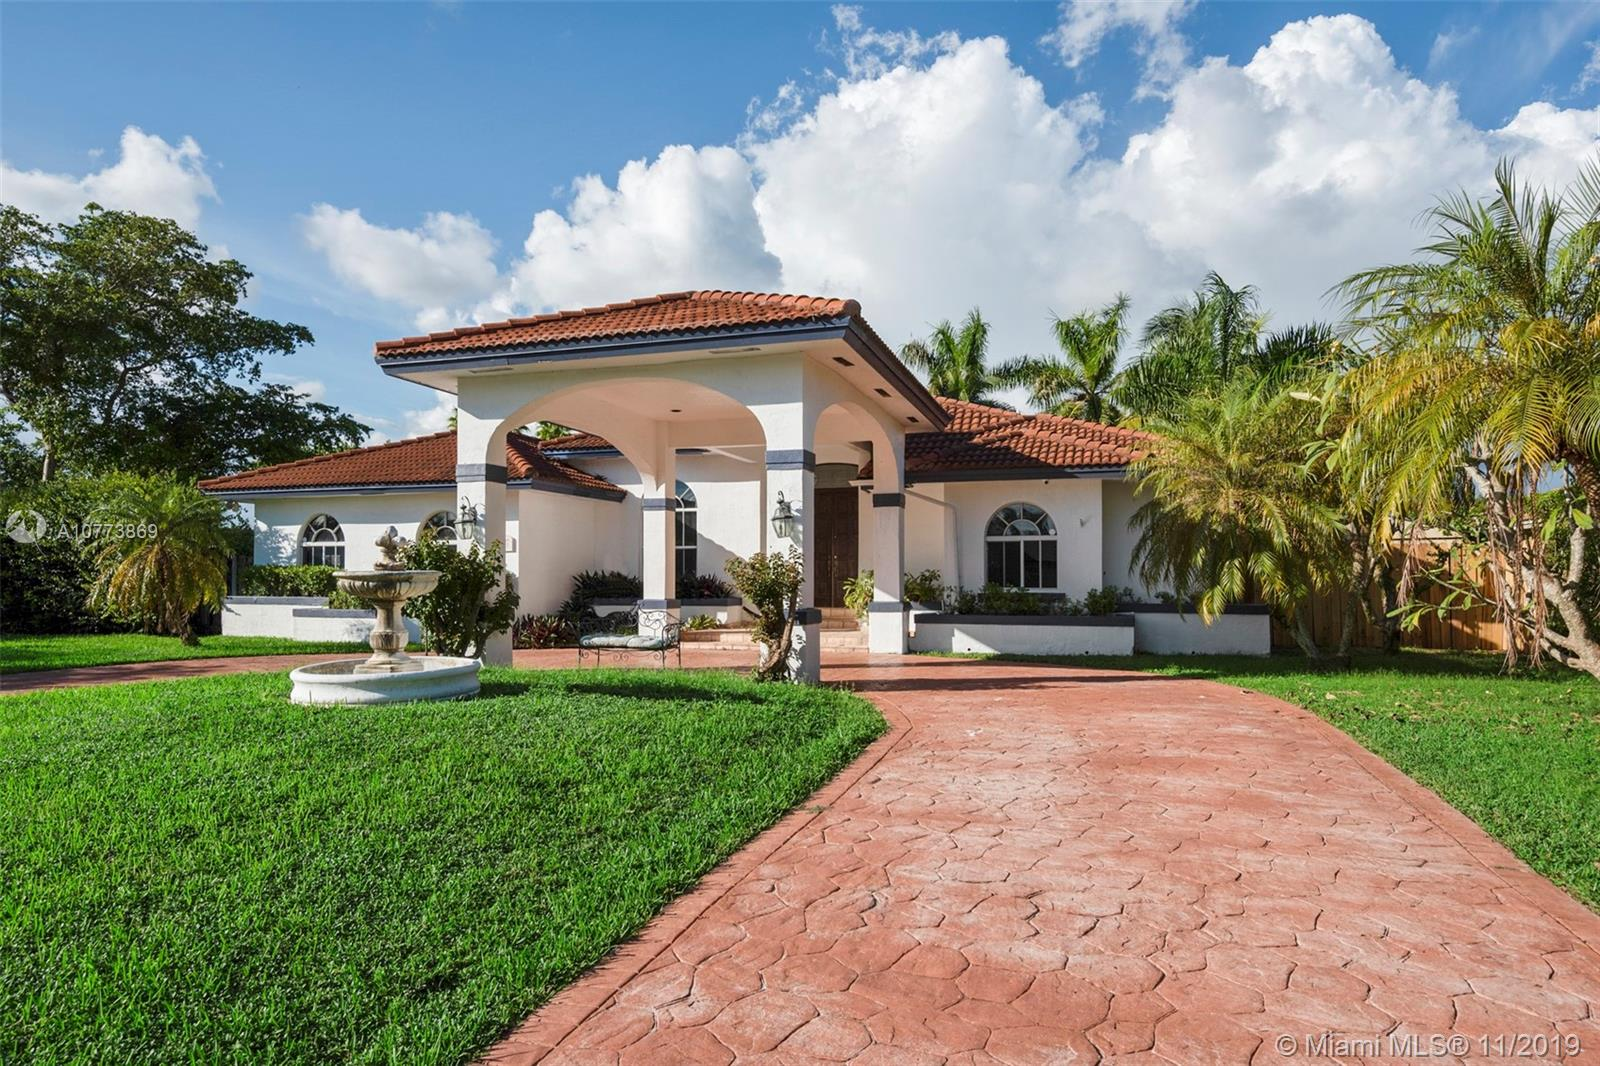 12681 SW 78th St, Kendall, Florida